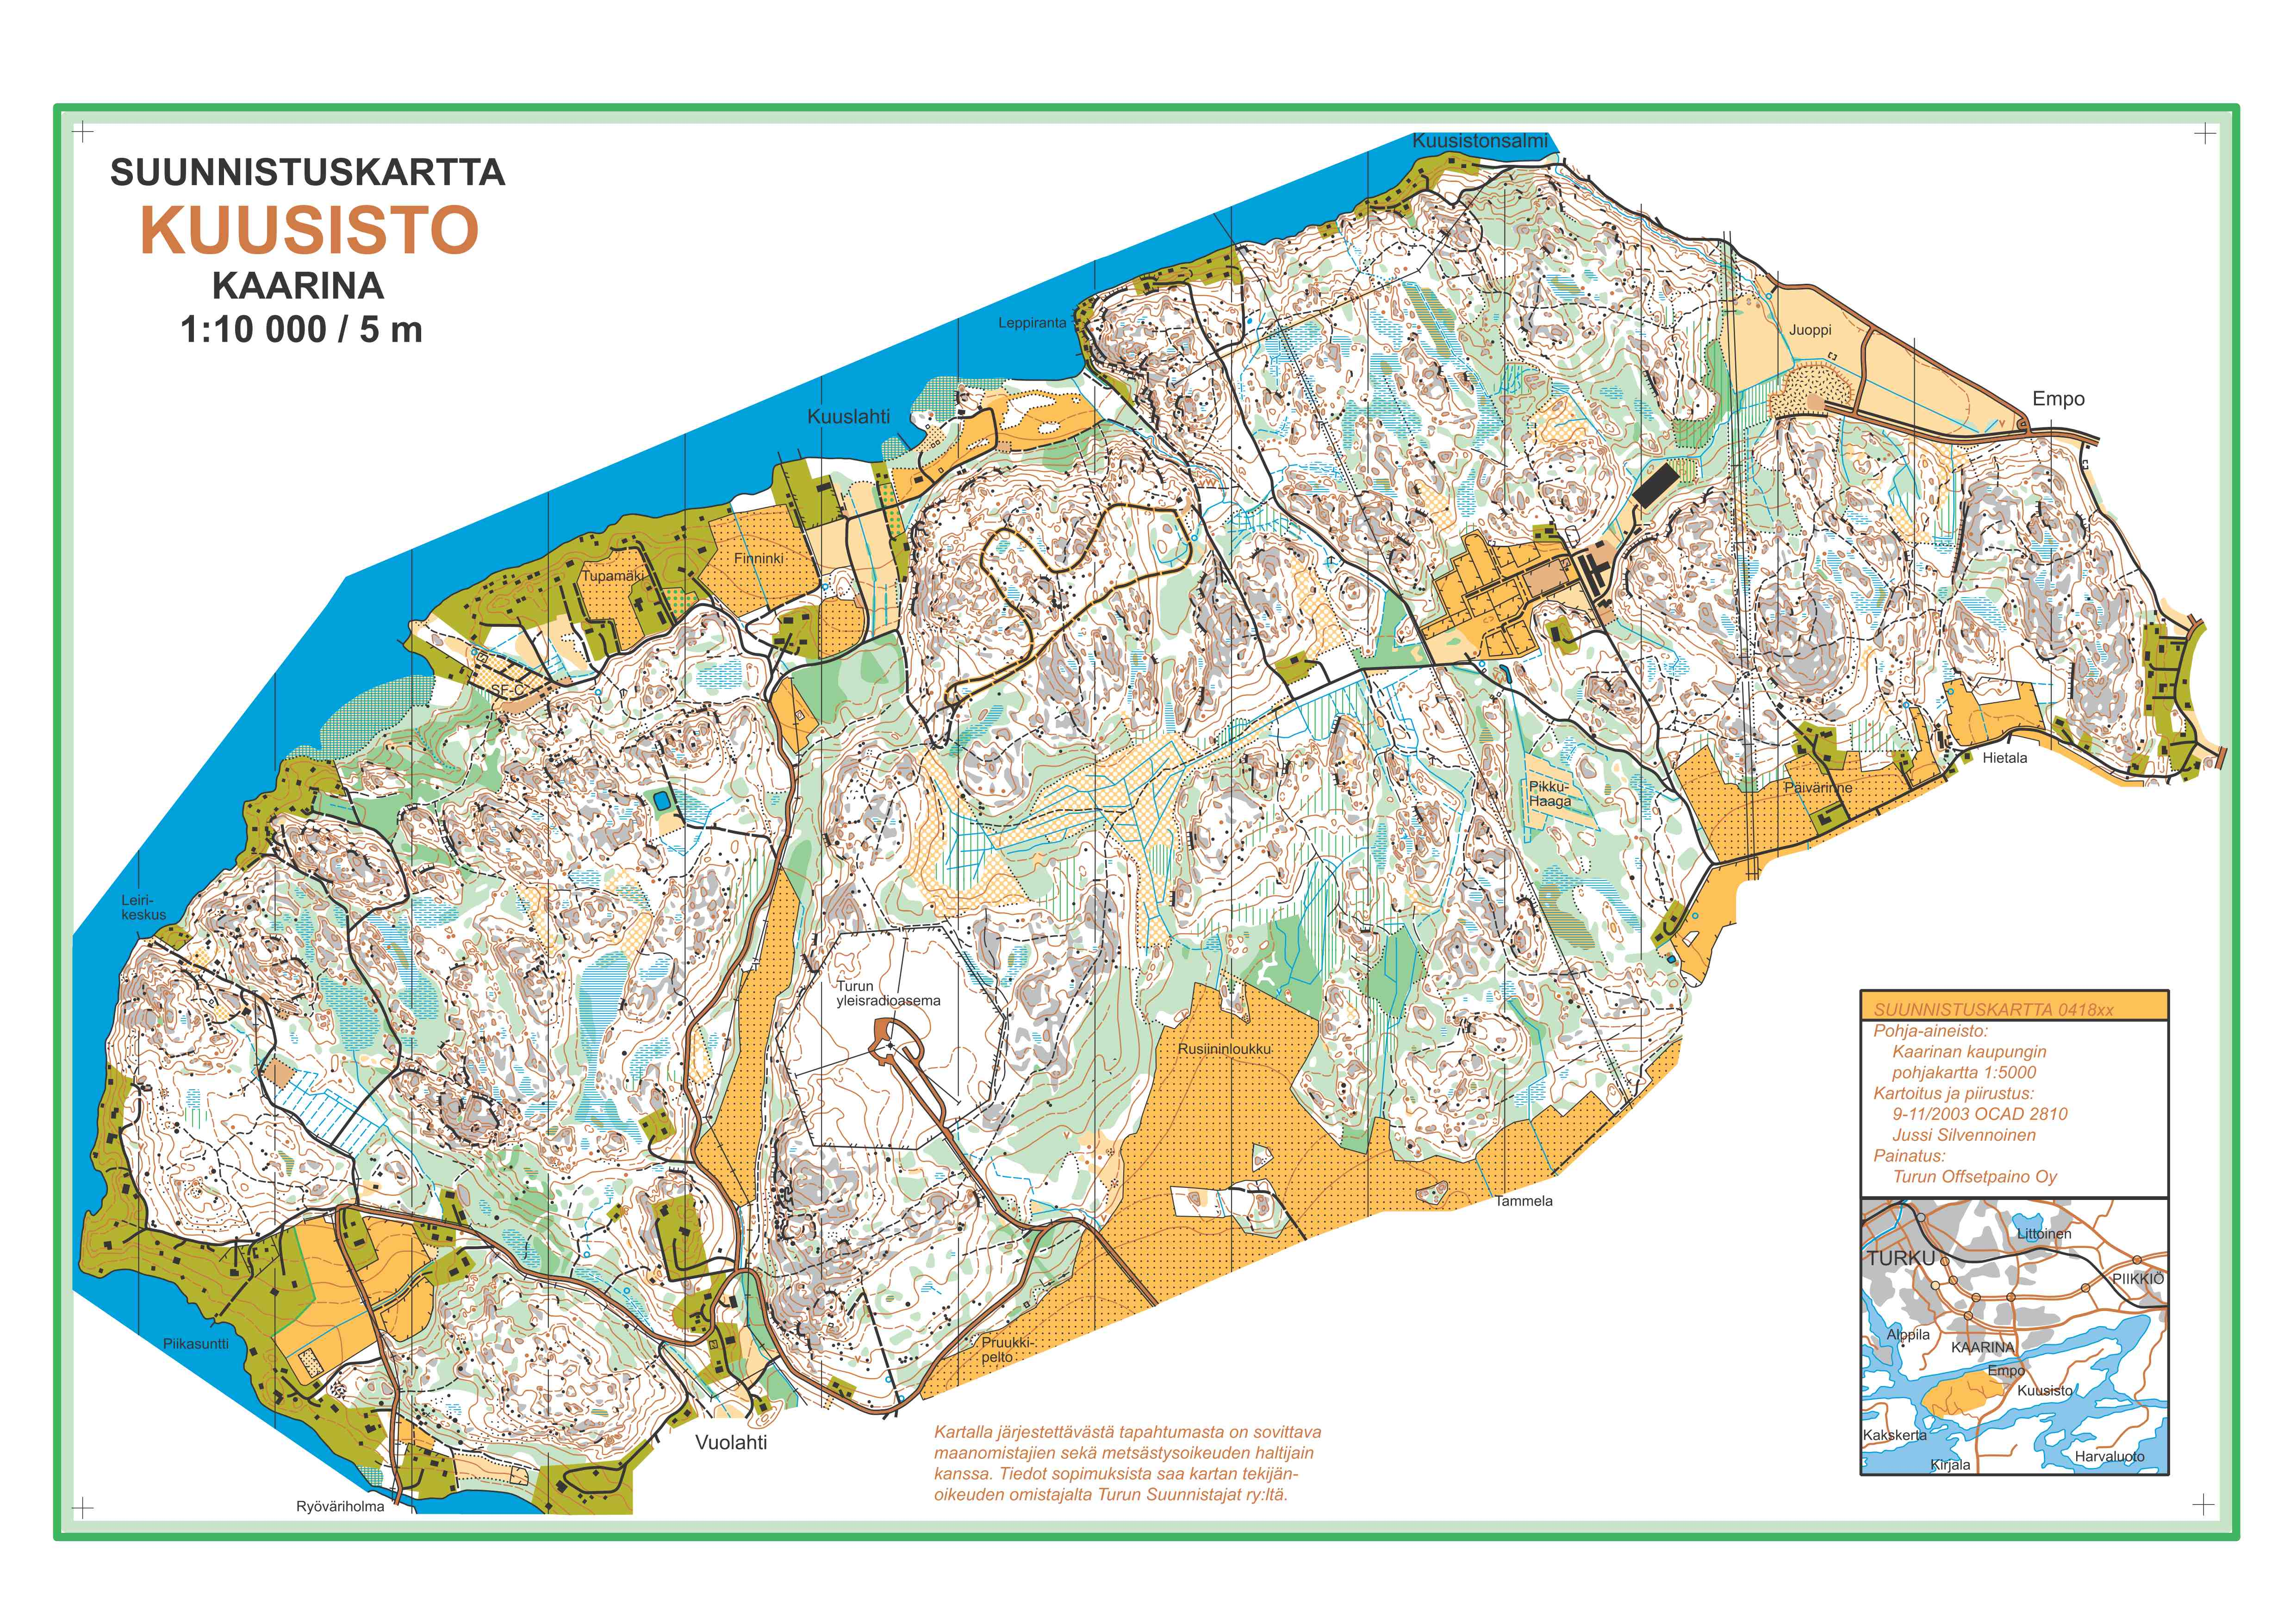 NORT 2013 Race 5 - old map - June 8th 2013 - Orienteering Map from NORT